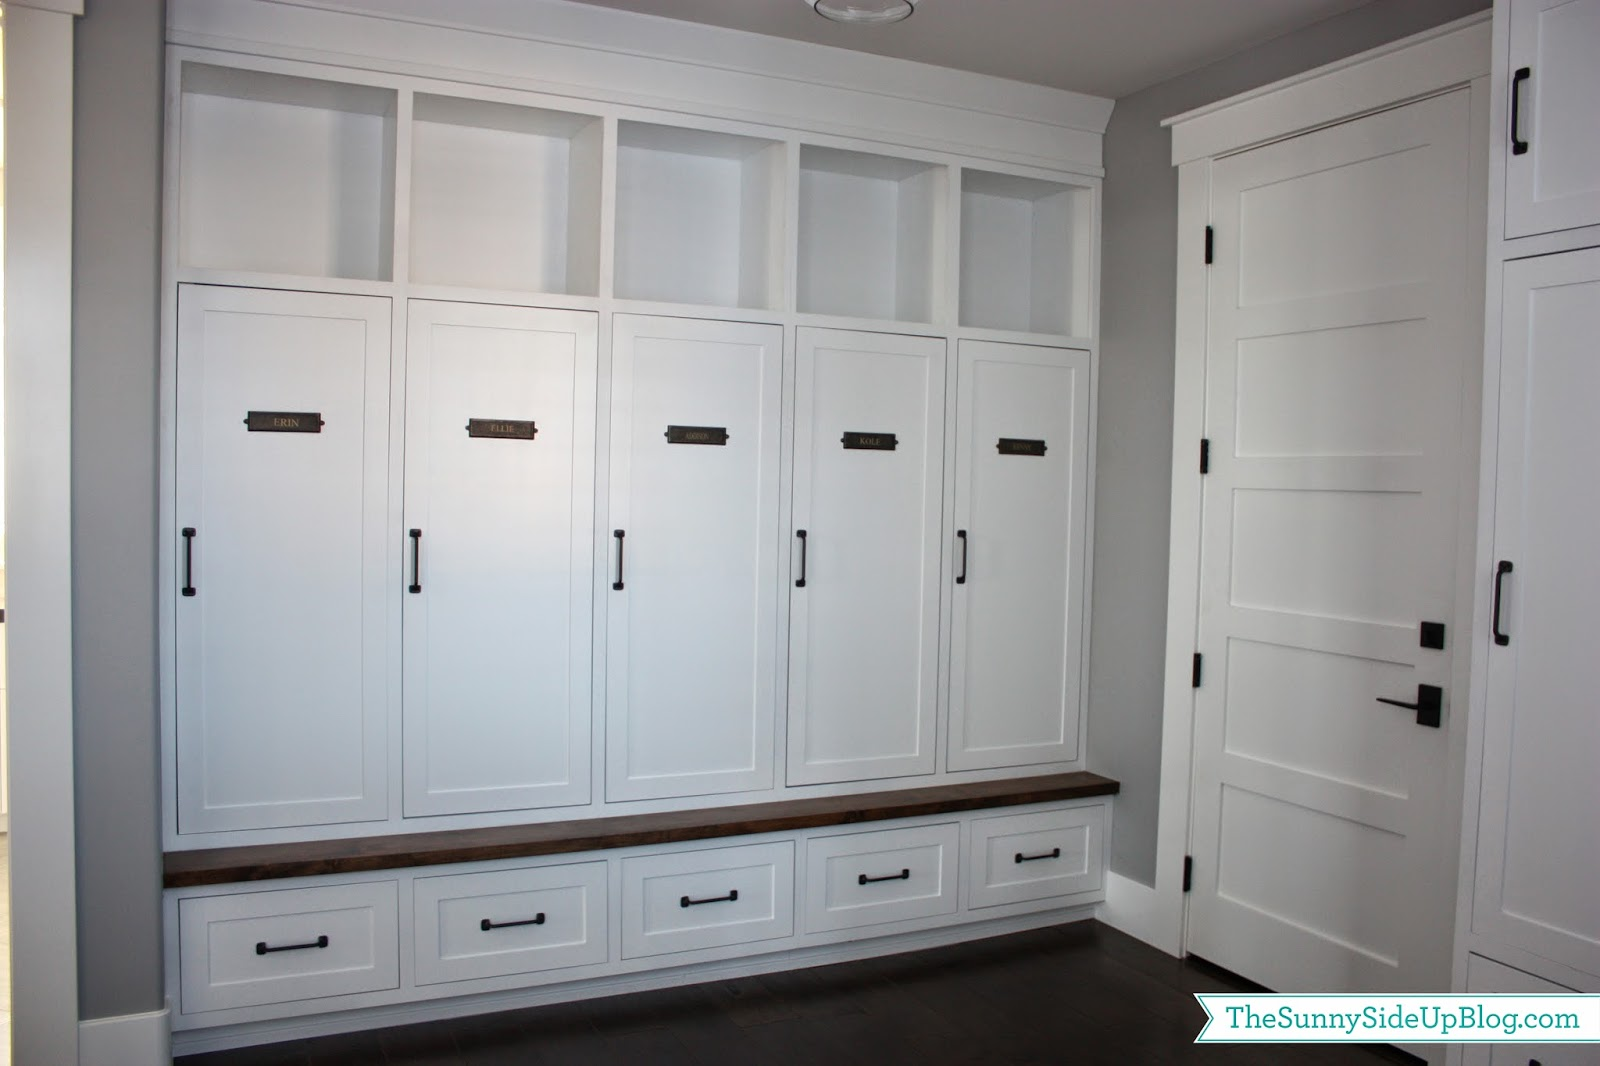 Charmant My New Organized Mudroom!